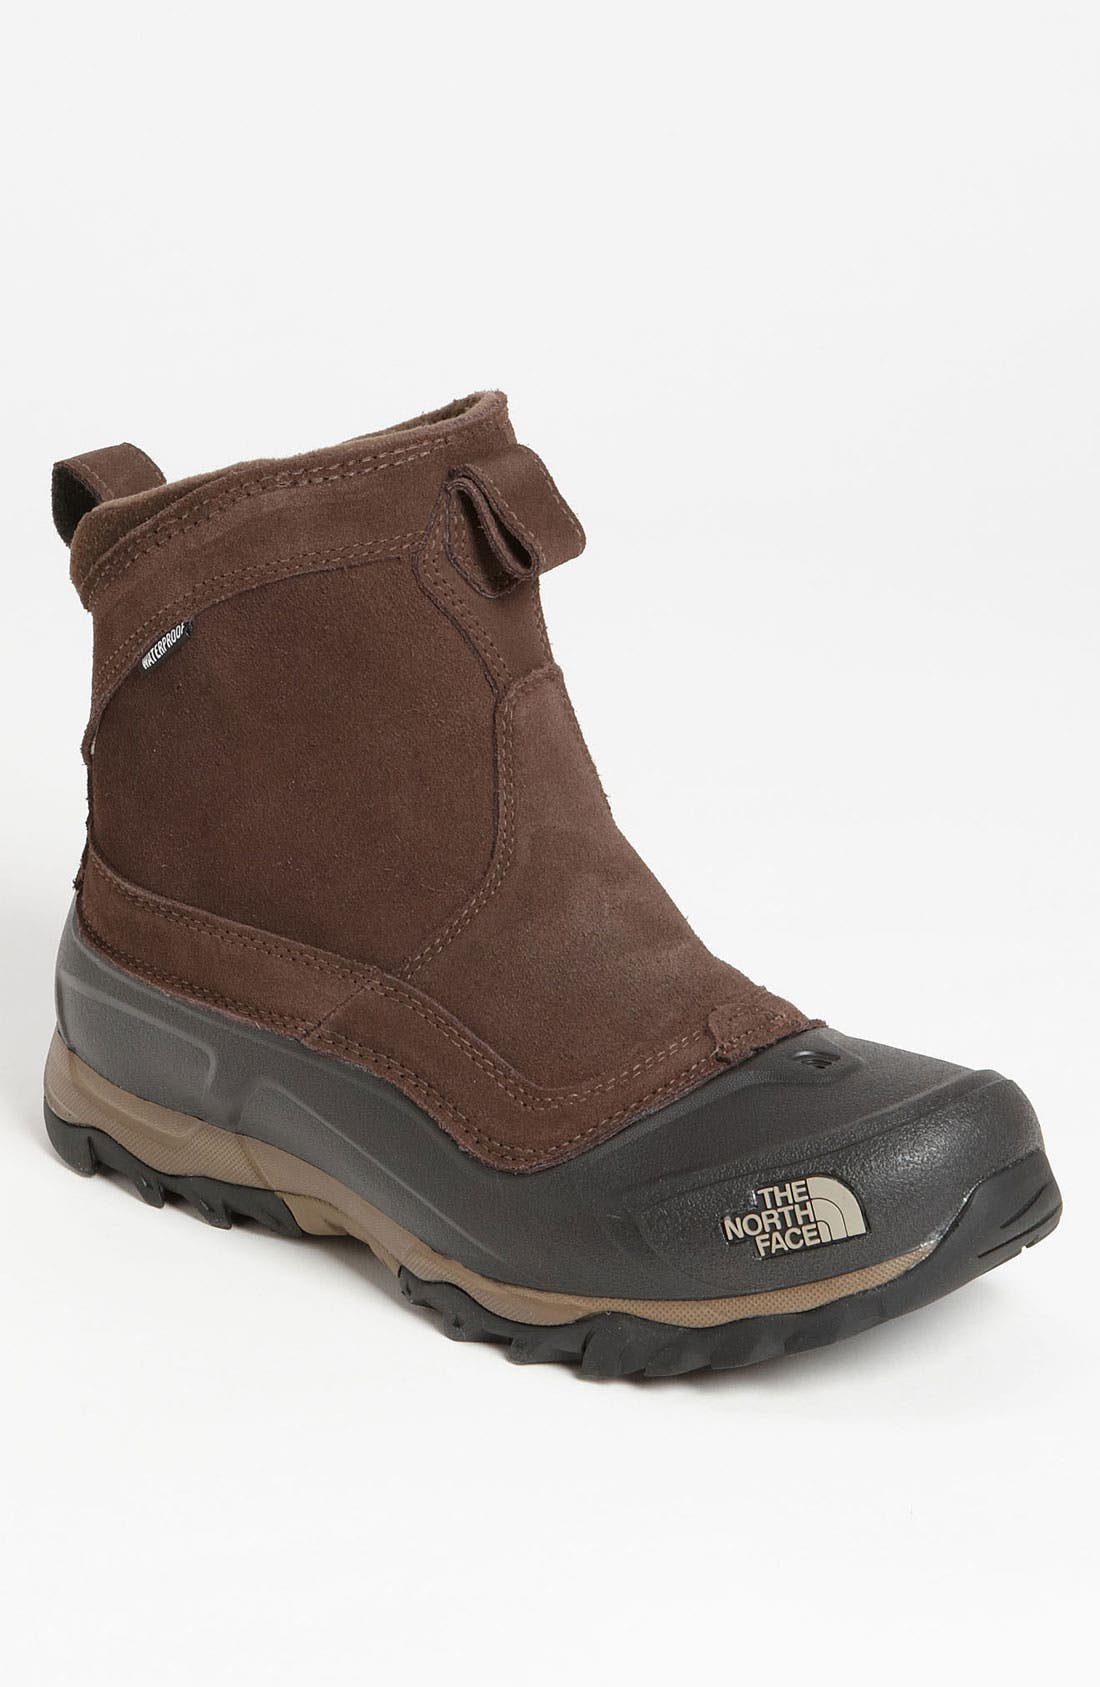 Alternate Image 1 Selected - The North Face 'Snowfuse' Snow Boot